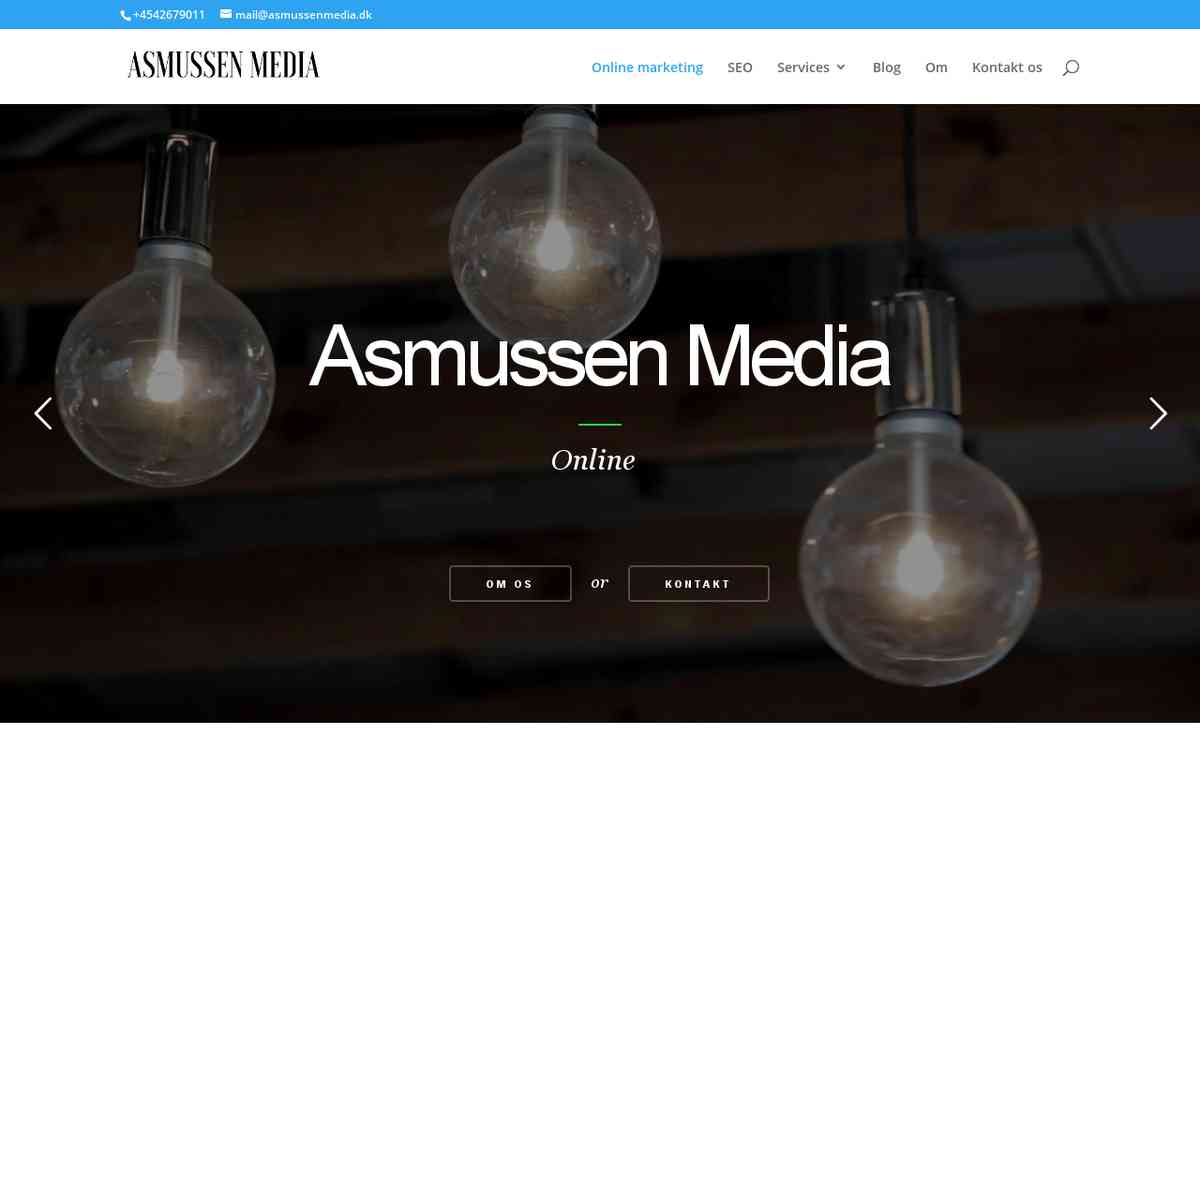 Asmussen Media